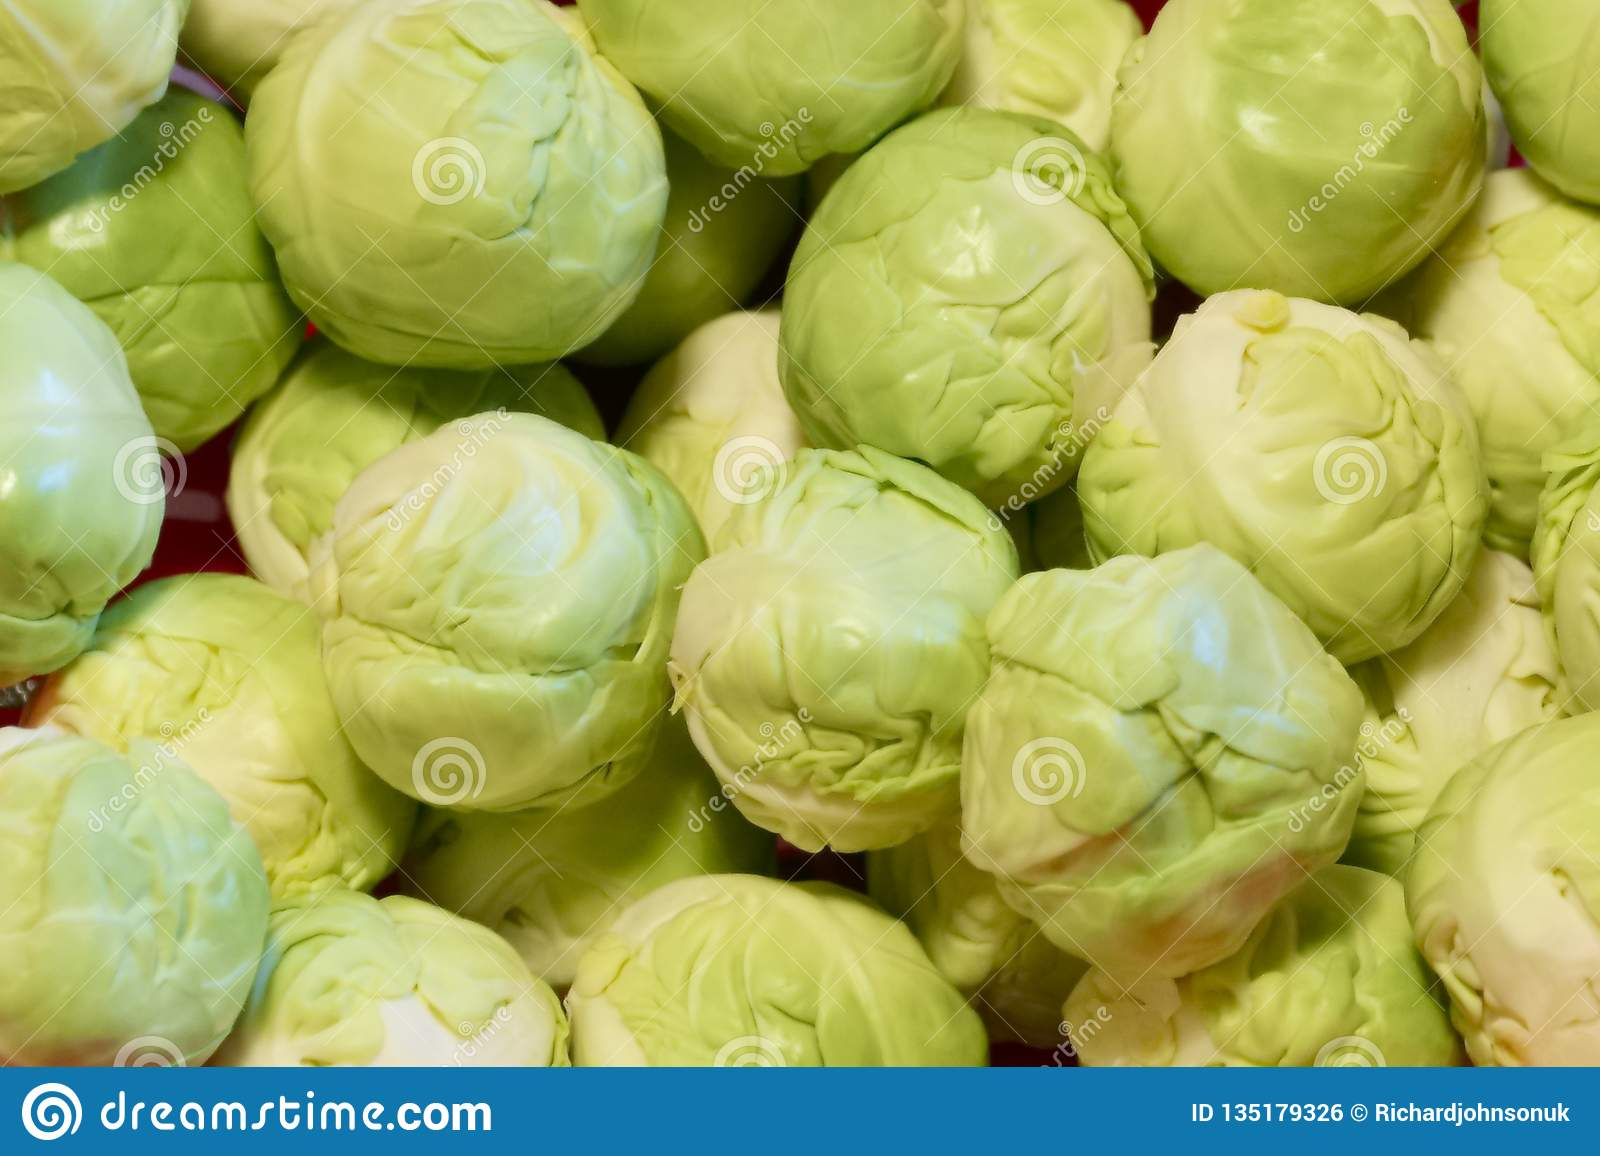 Brussel sprouts Christmas festive food close up